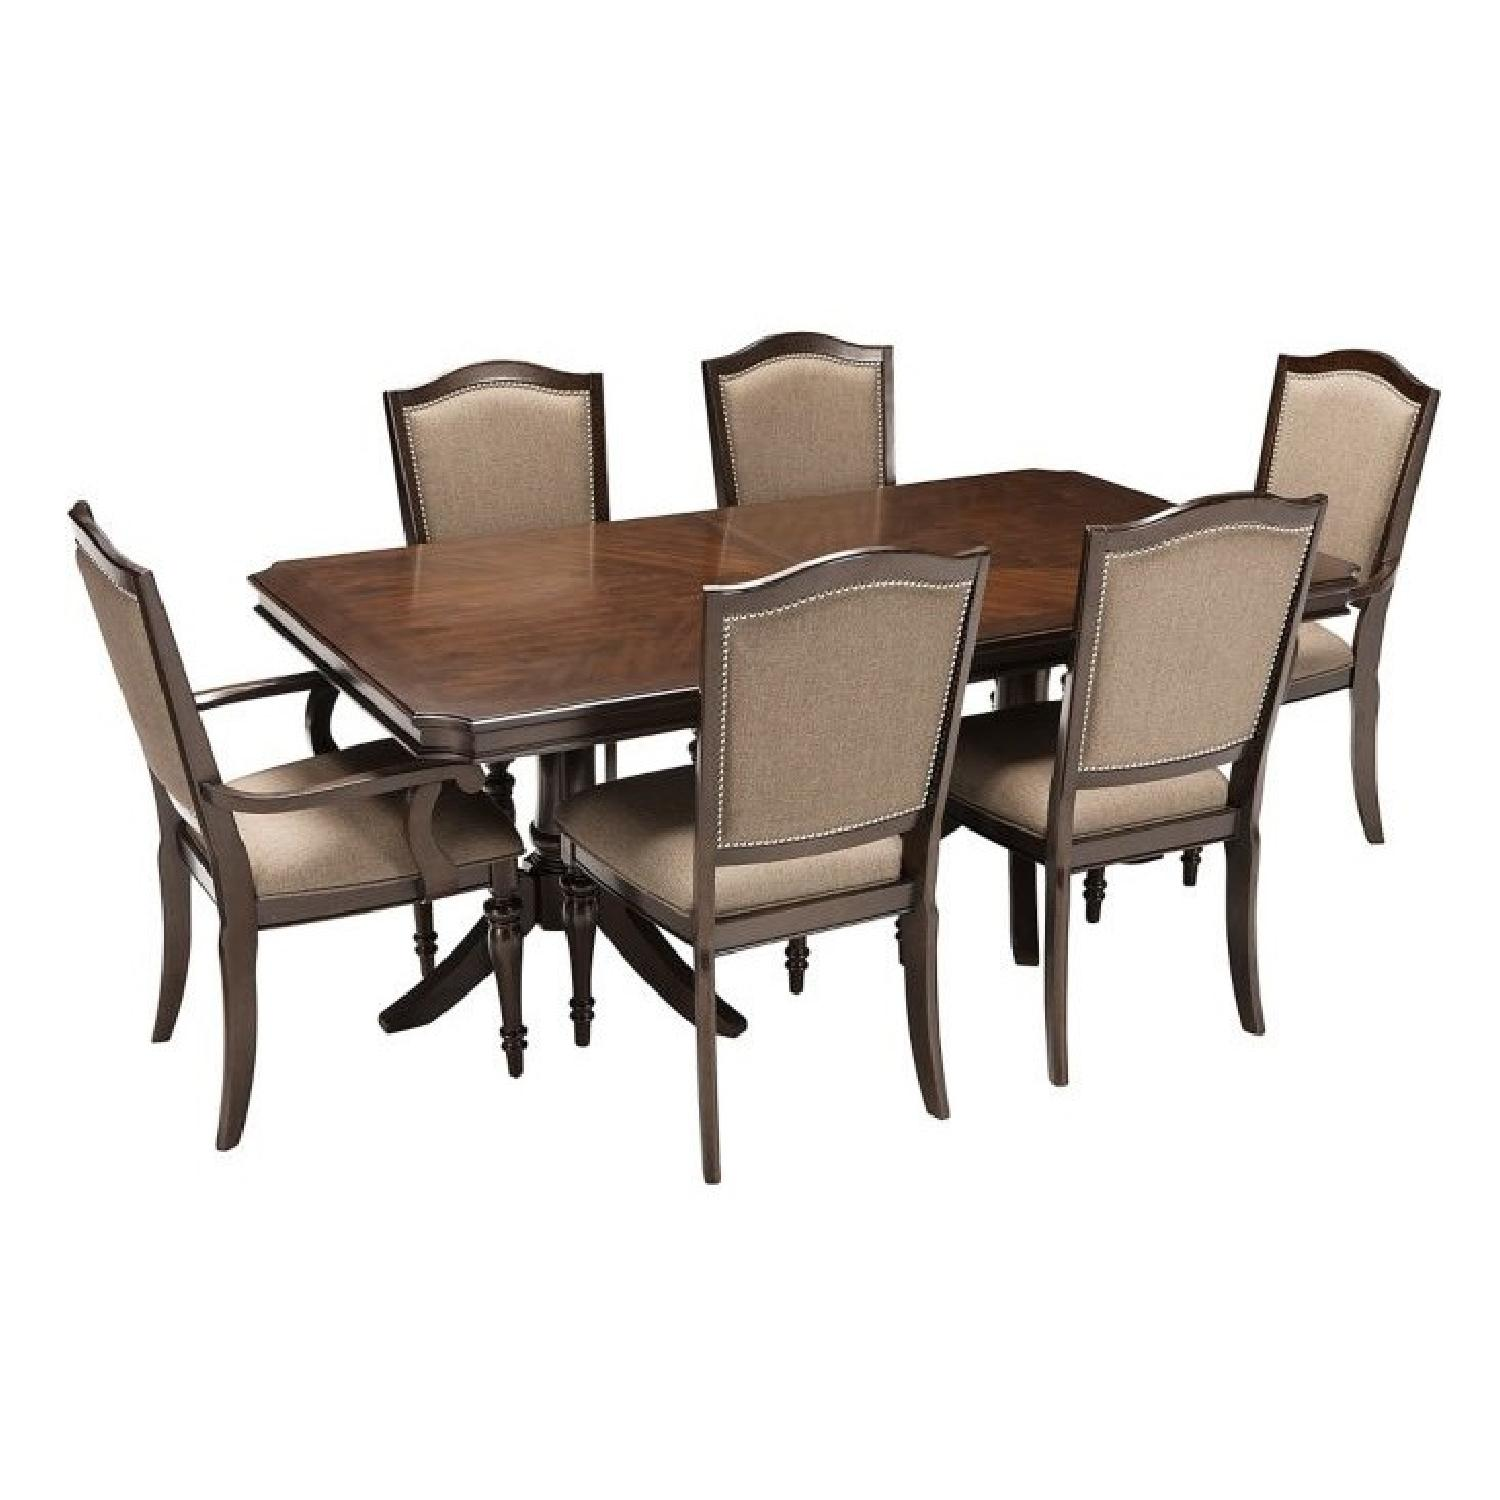 Raymour & Flanigan Bay City 7-Piece Dining Set